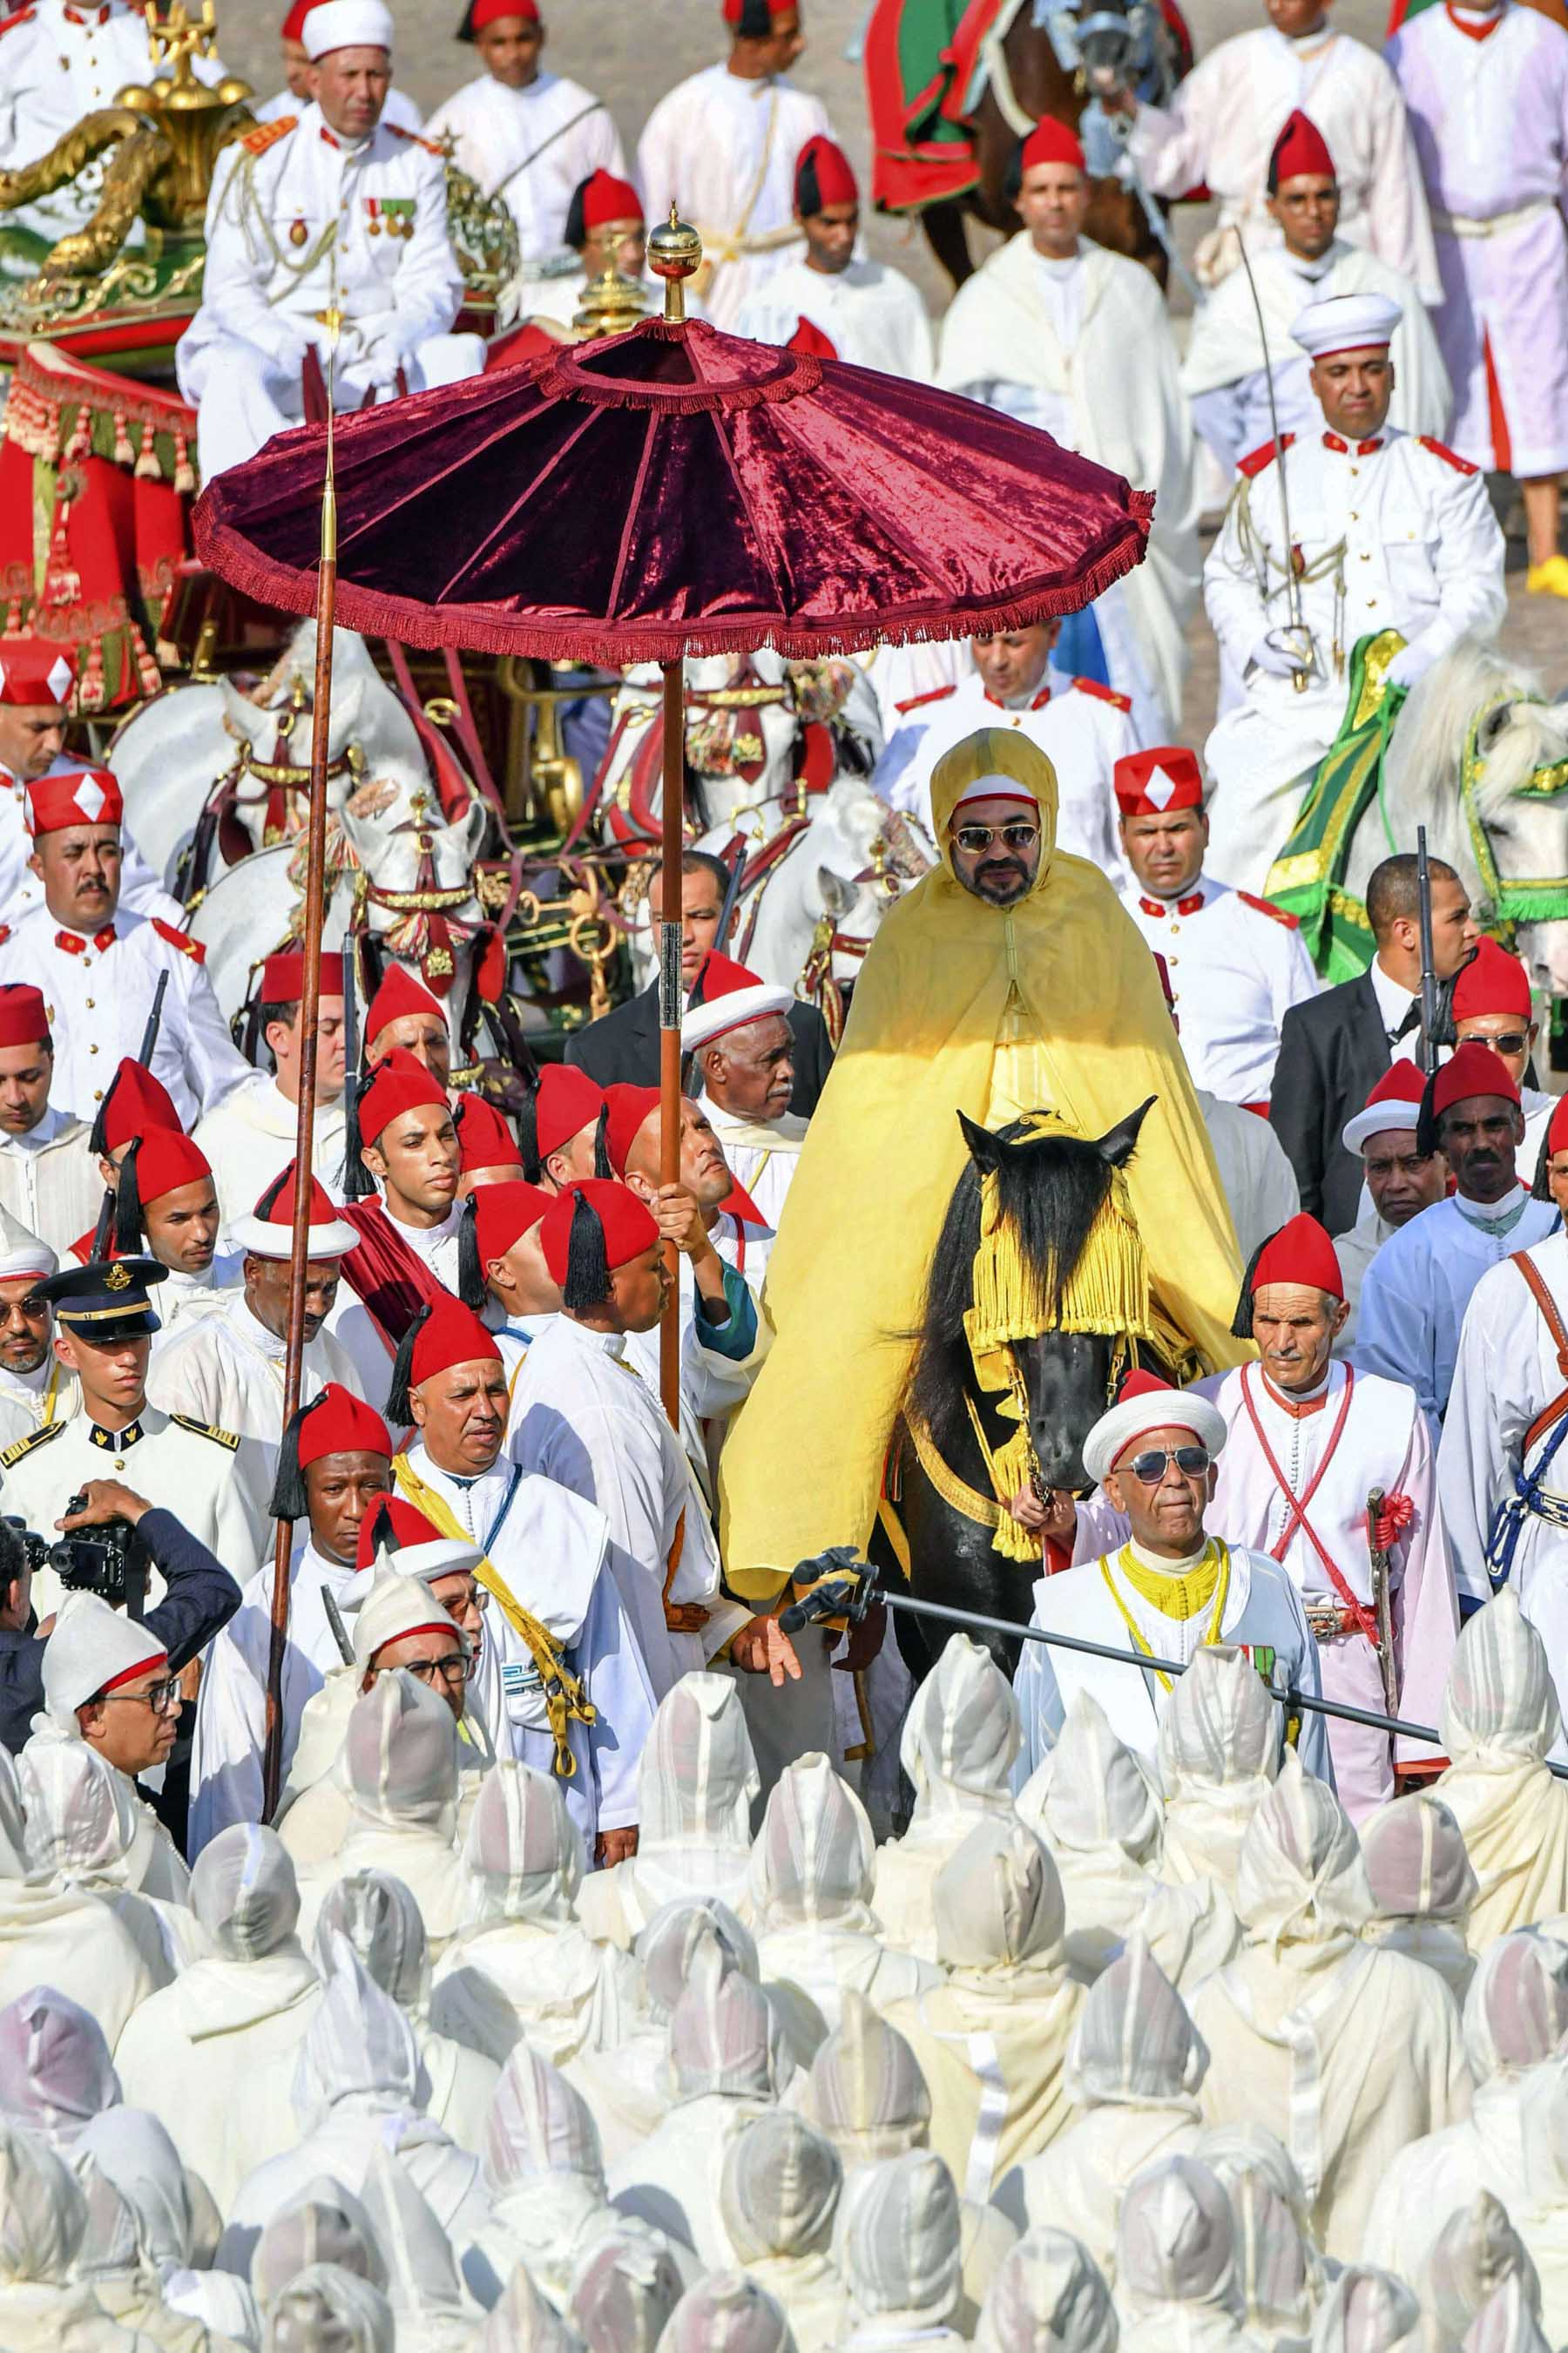 Anniversary celebration. Morocco's King Mohammed VI attends a ceremony of allegiance in Tetouan, Morocco, July 31.  (AP)